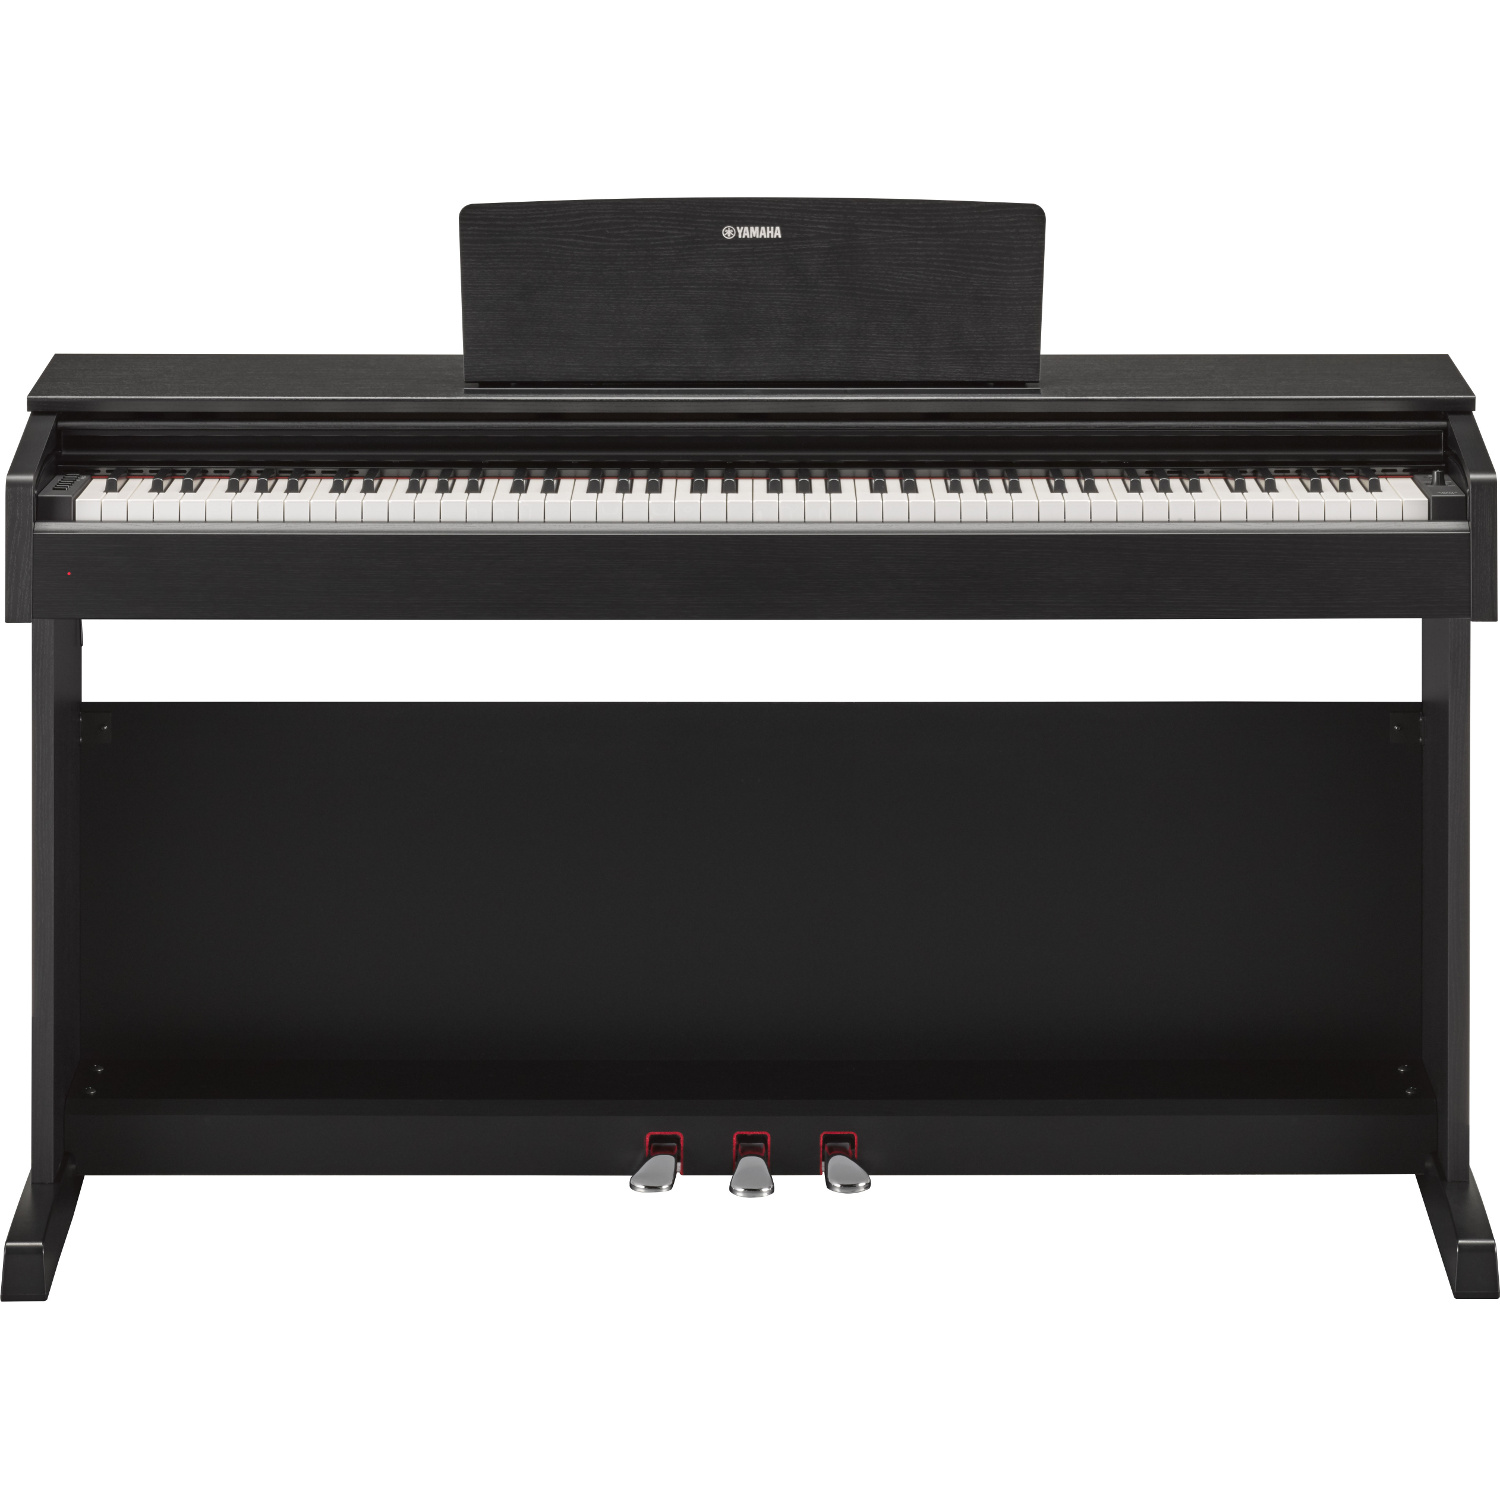 yamaha arius ydp 143b e piano schwarz kaufen bax shop. Black Bedroom Furniture Sets. Home Design Ideas